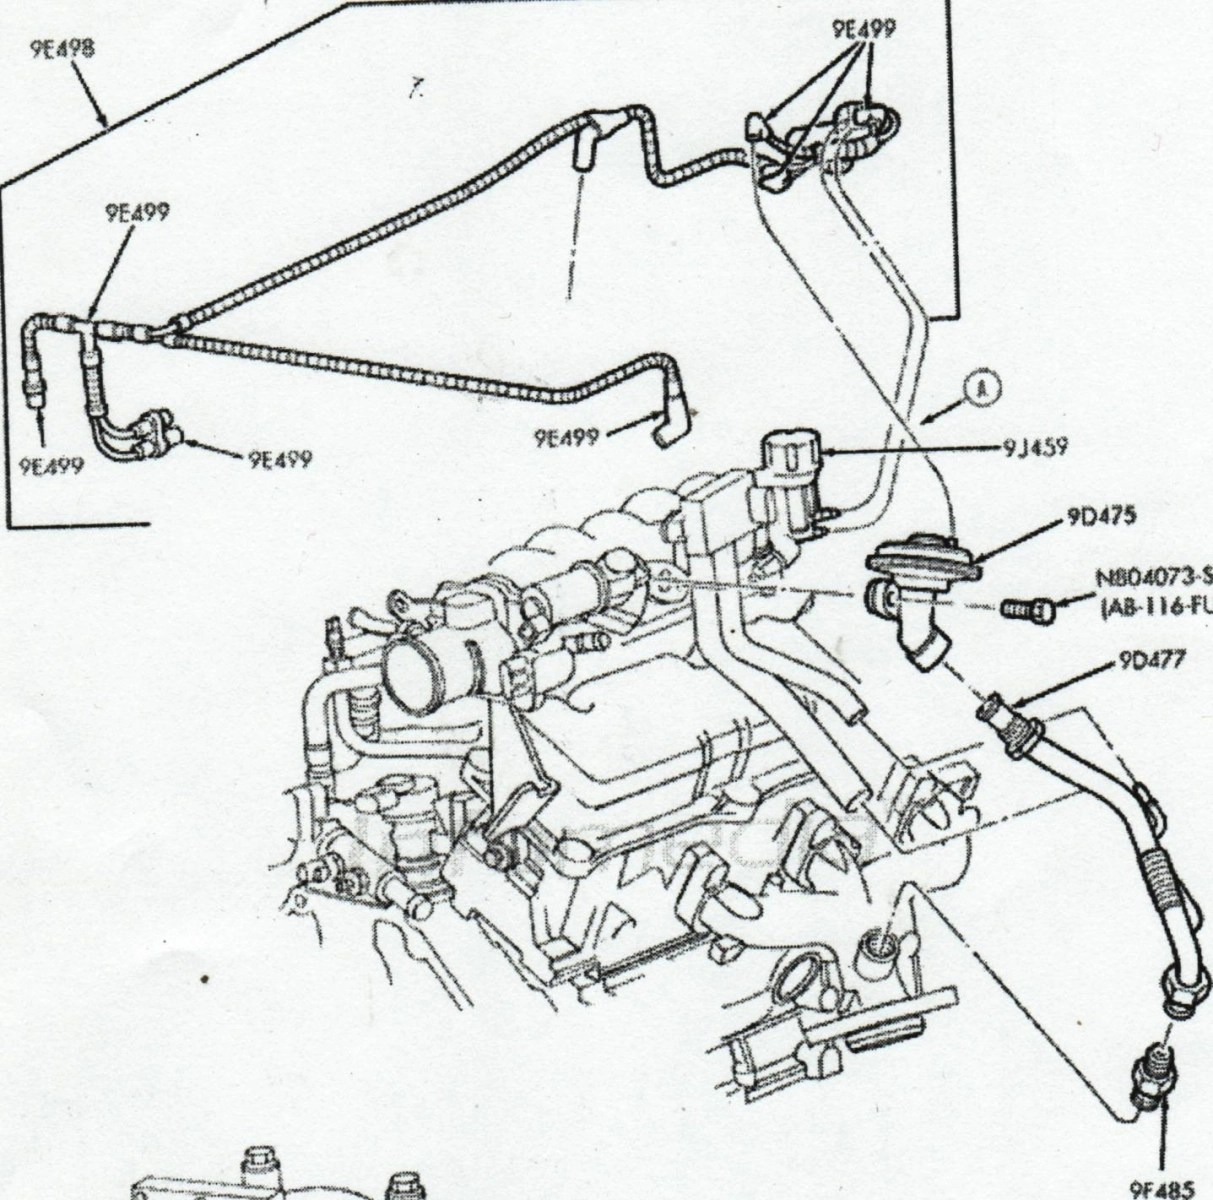 2001 ford taurus exhaust system diagram satellite tv installation 2006 fuel wiring diagrams